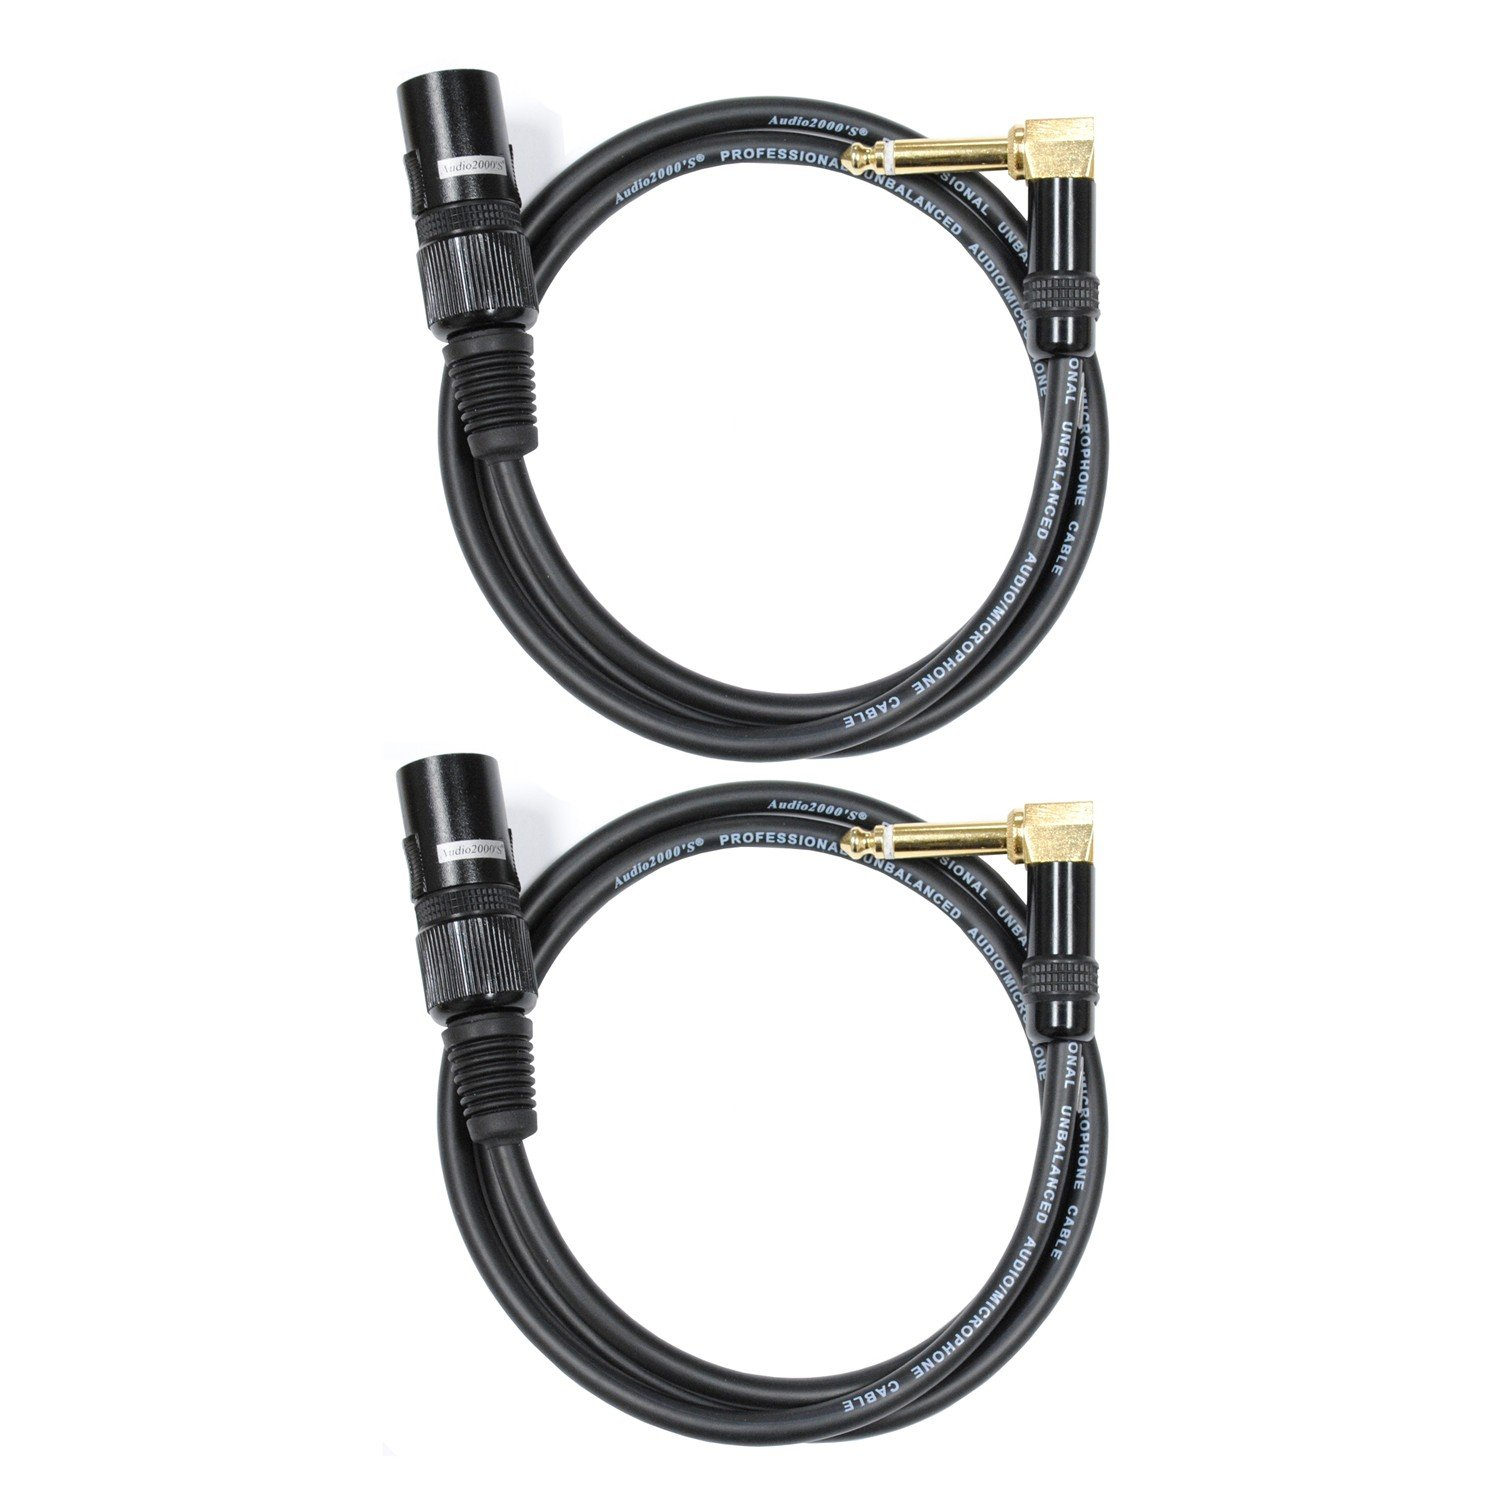 Audio2000's C17003P2 3 Ft 1/4 TS Right Angle to XLR Male Cable (2 Pack) C-17003P2